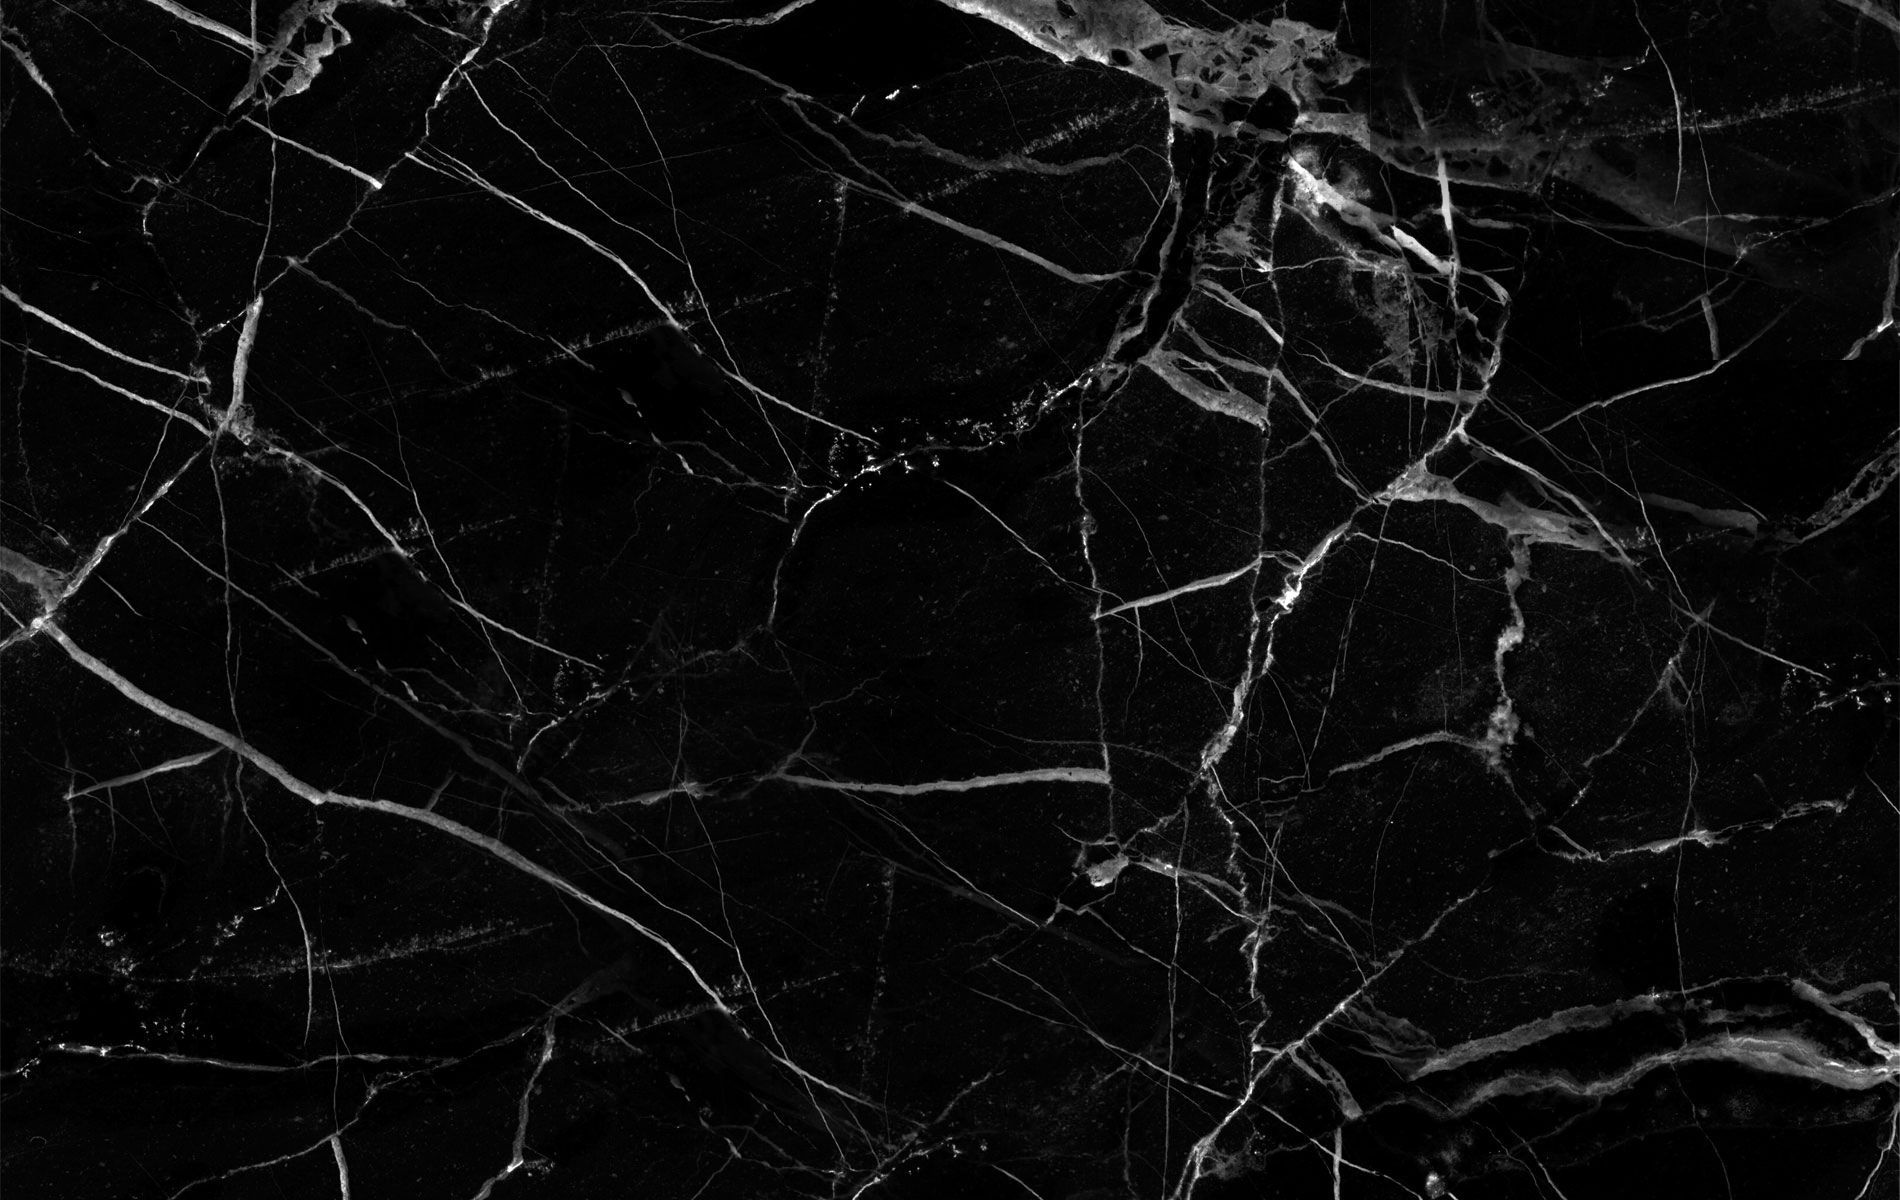 1900x1200 Dark Black Marble HD Photos. | iPad&iPhone wallpapers in 2019 ...